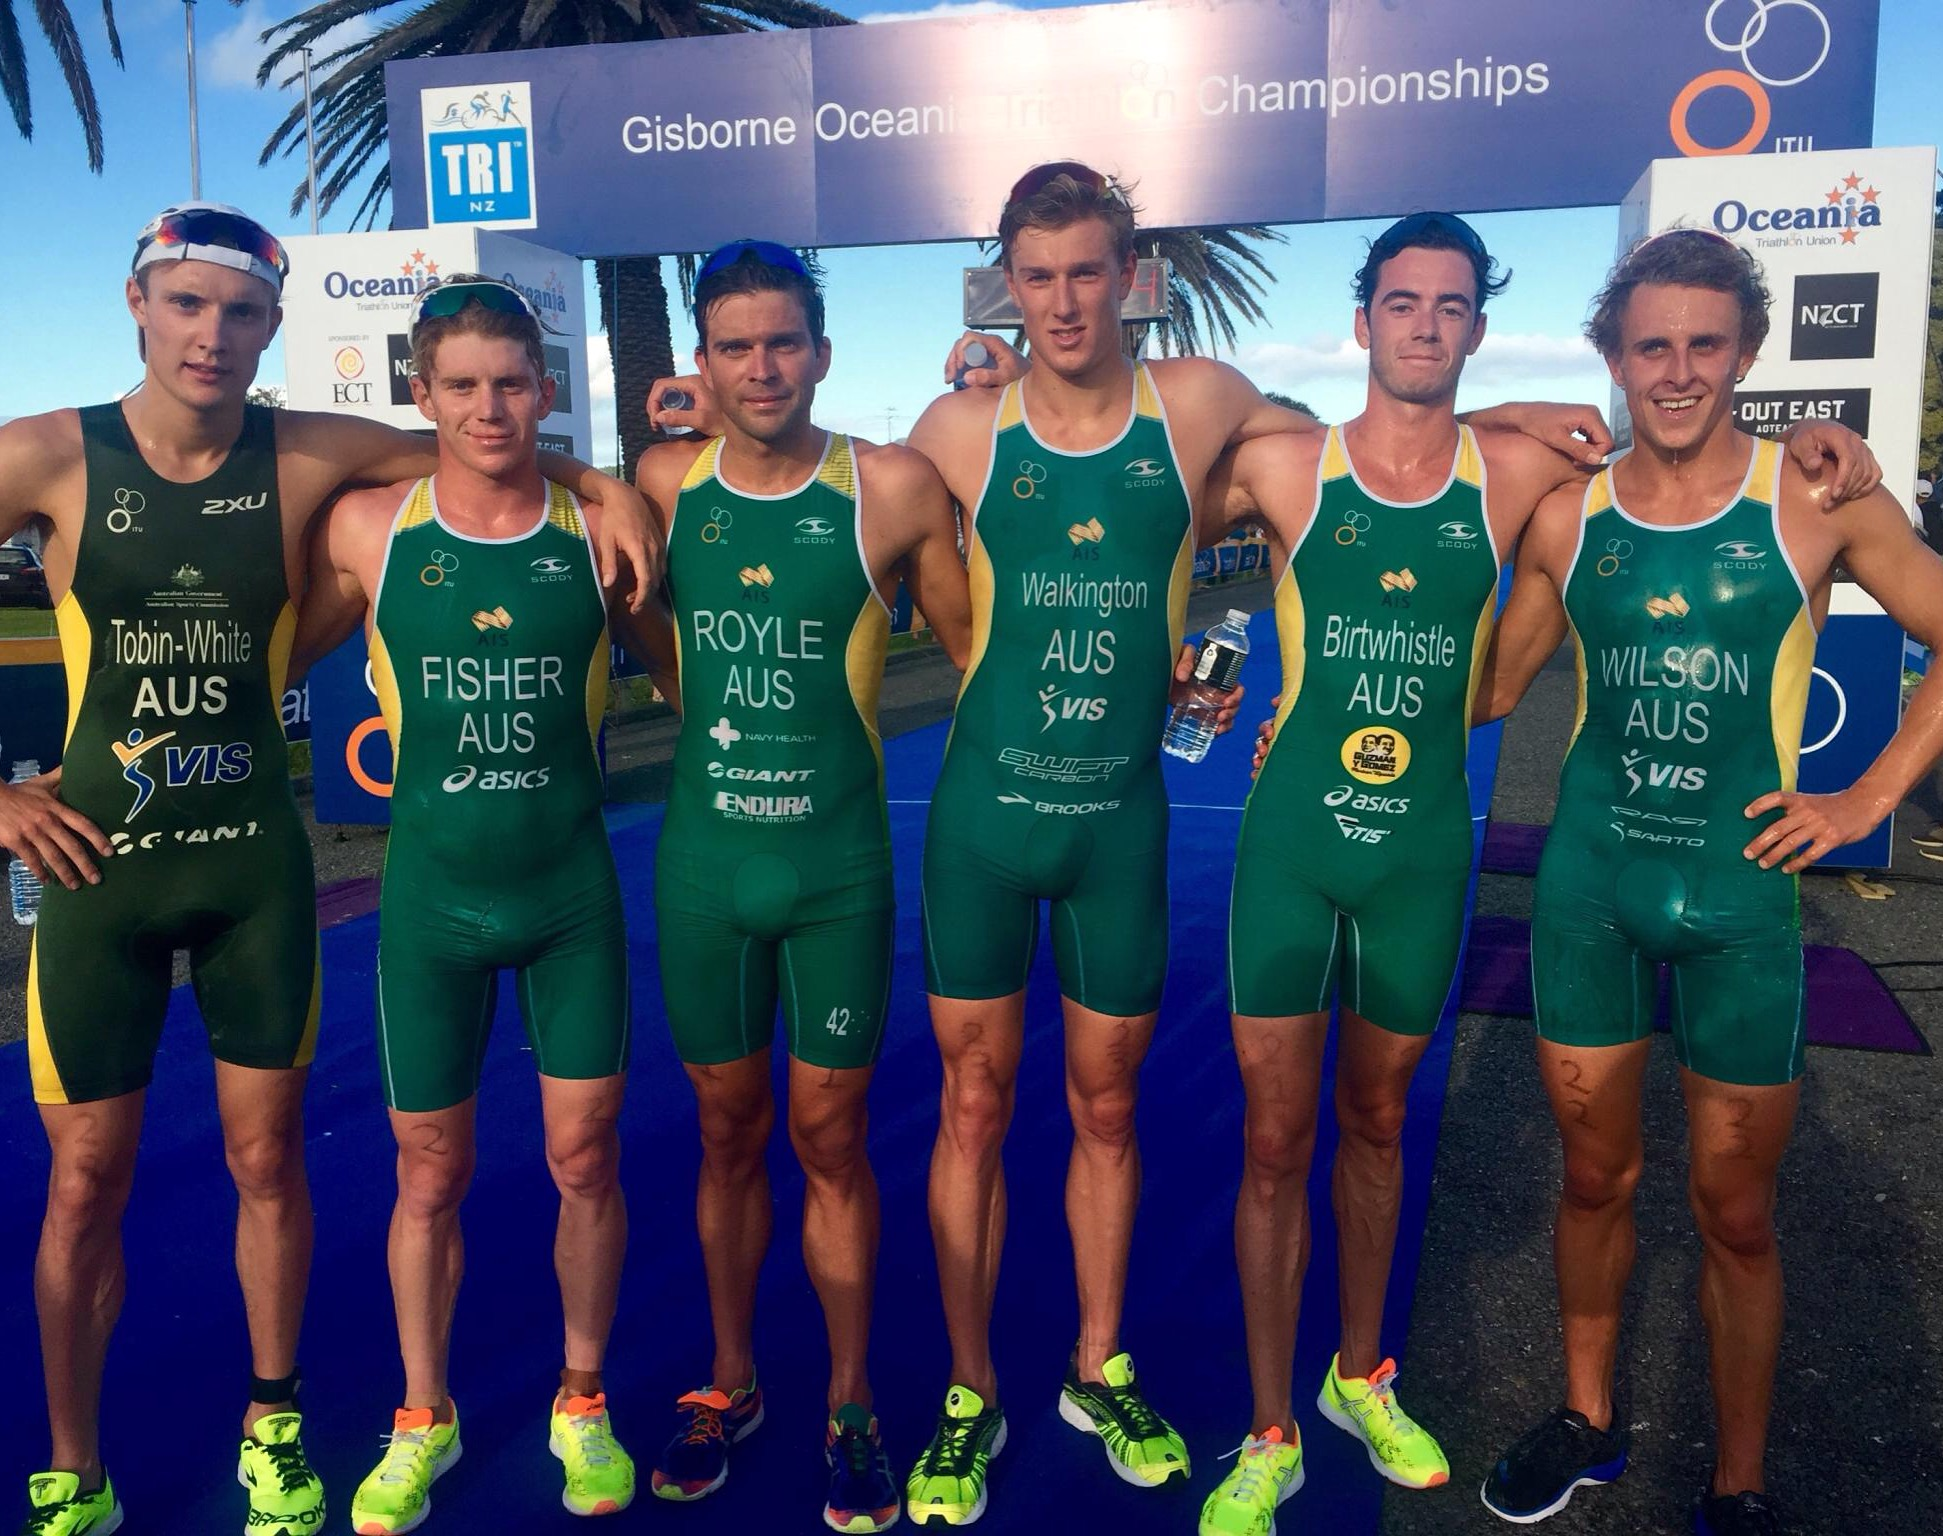 The Green and Gold Machine was on fire in Gisbourne